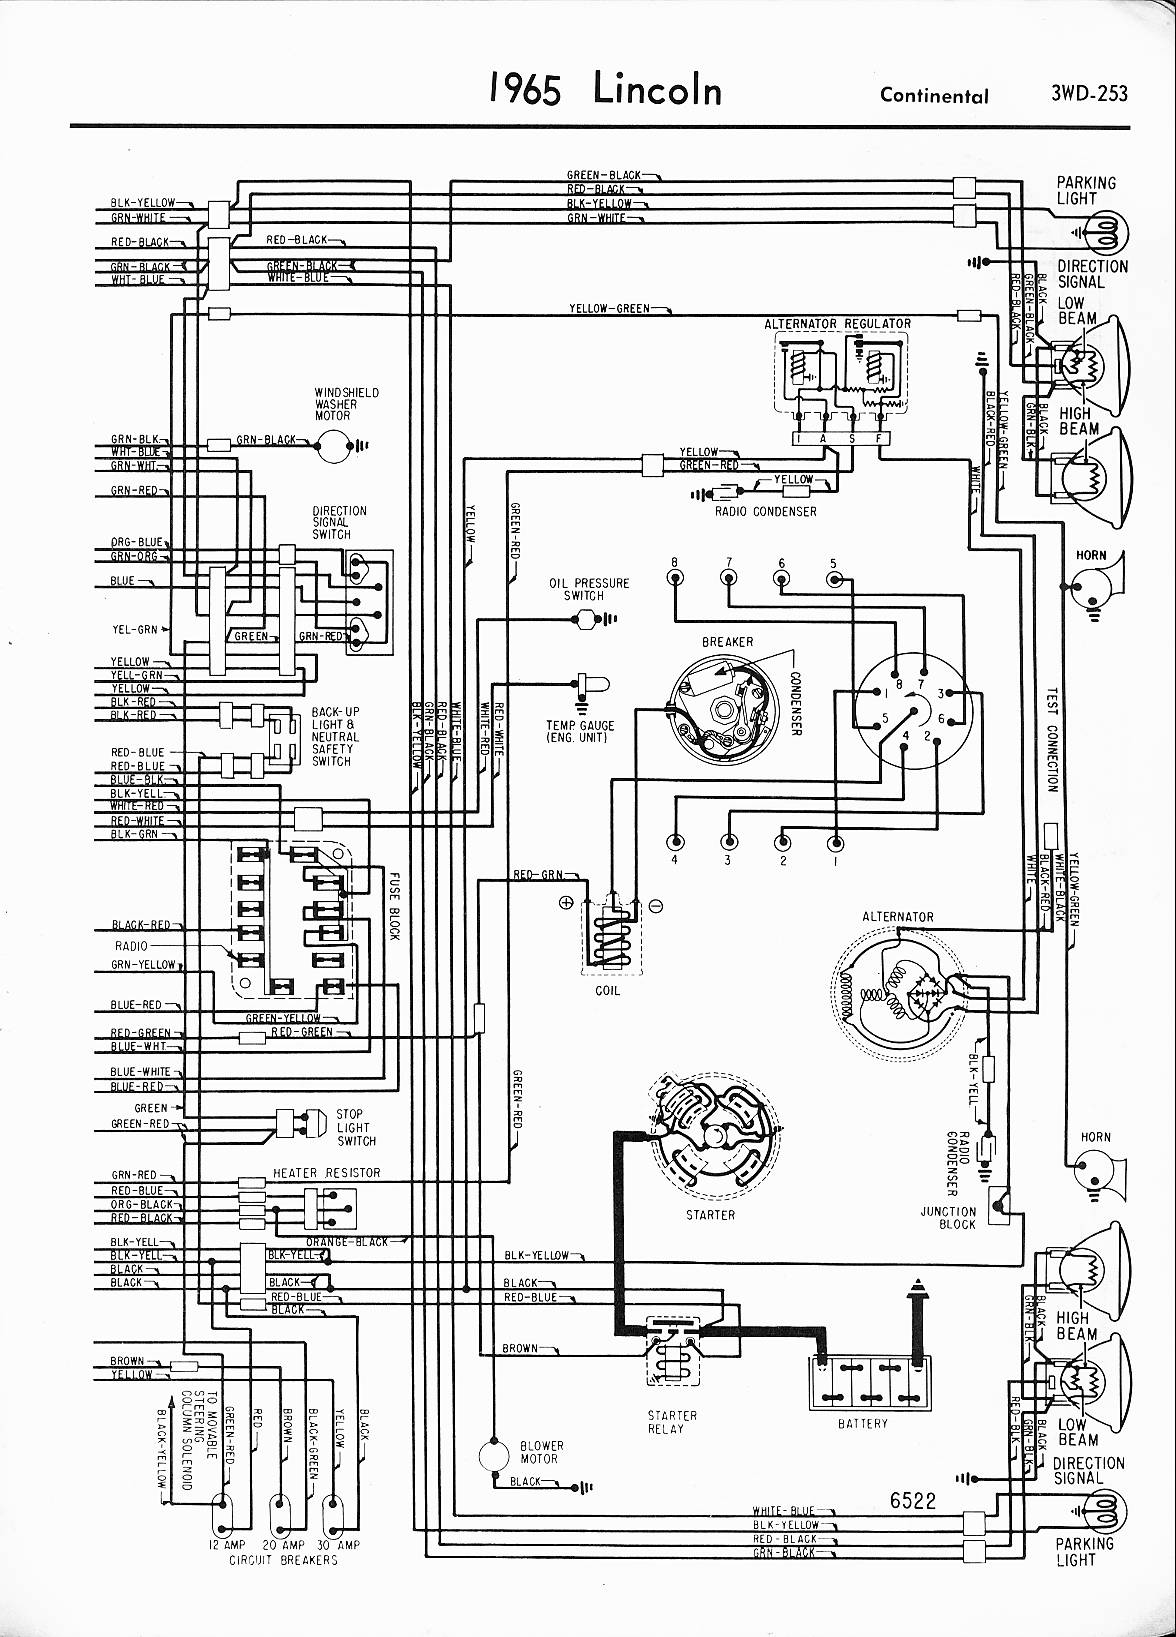 1971 Gmc Truck Engine Wiring Diagram Library For Lincoln Free Image 1976 Chevrolet